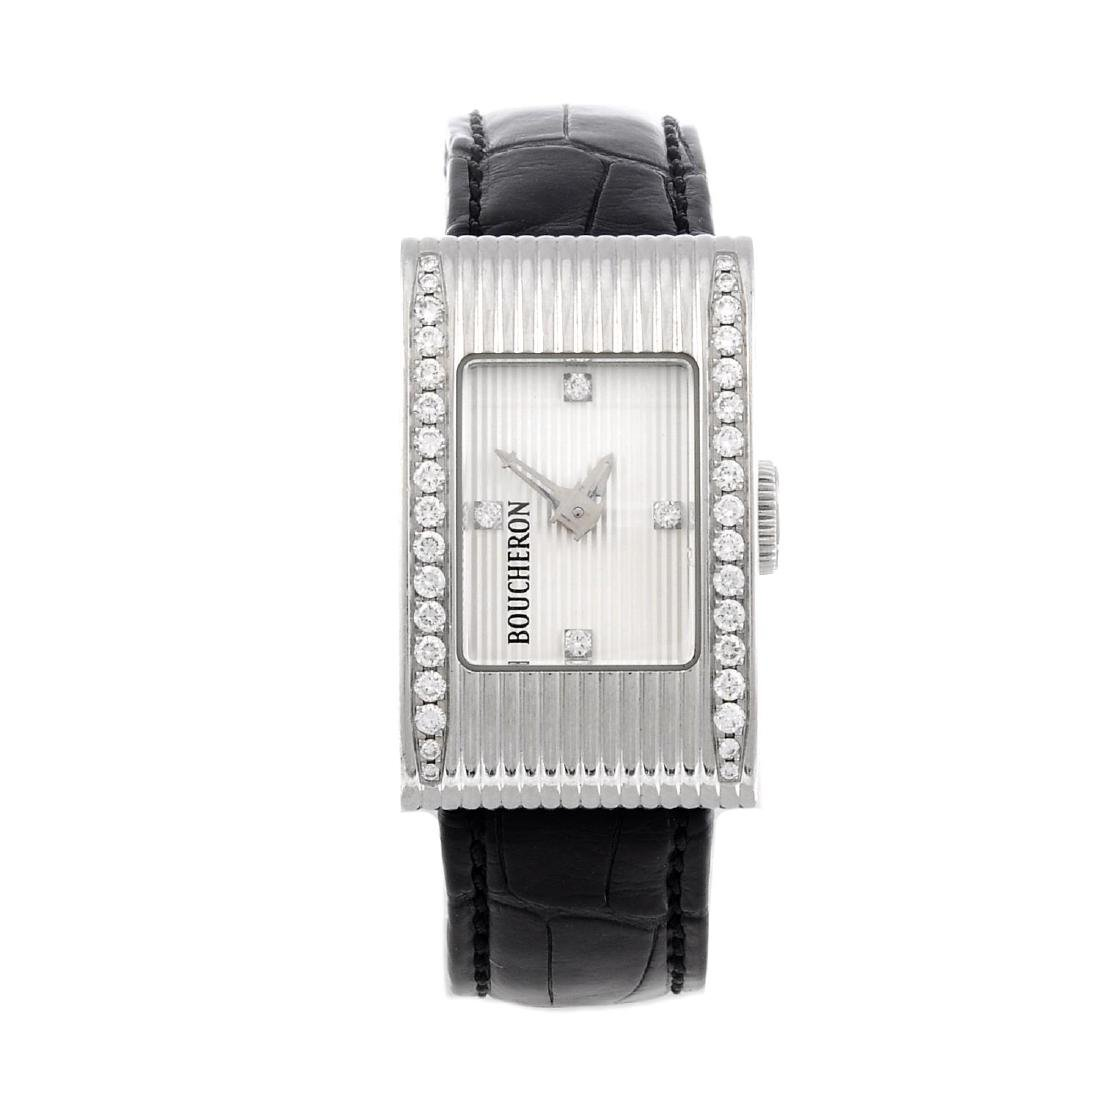 BOUCHERON - a lady's wrist watch. Stainless steel